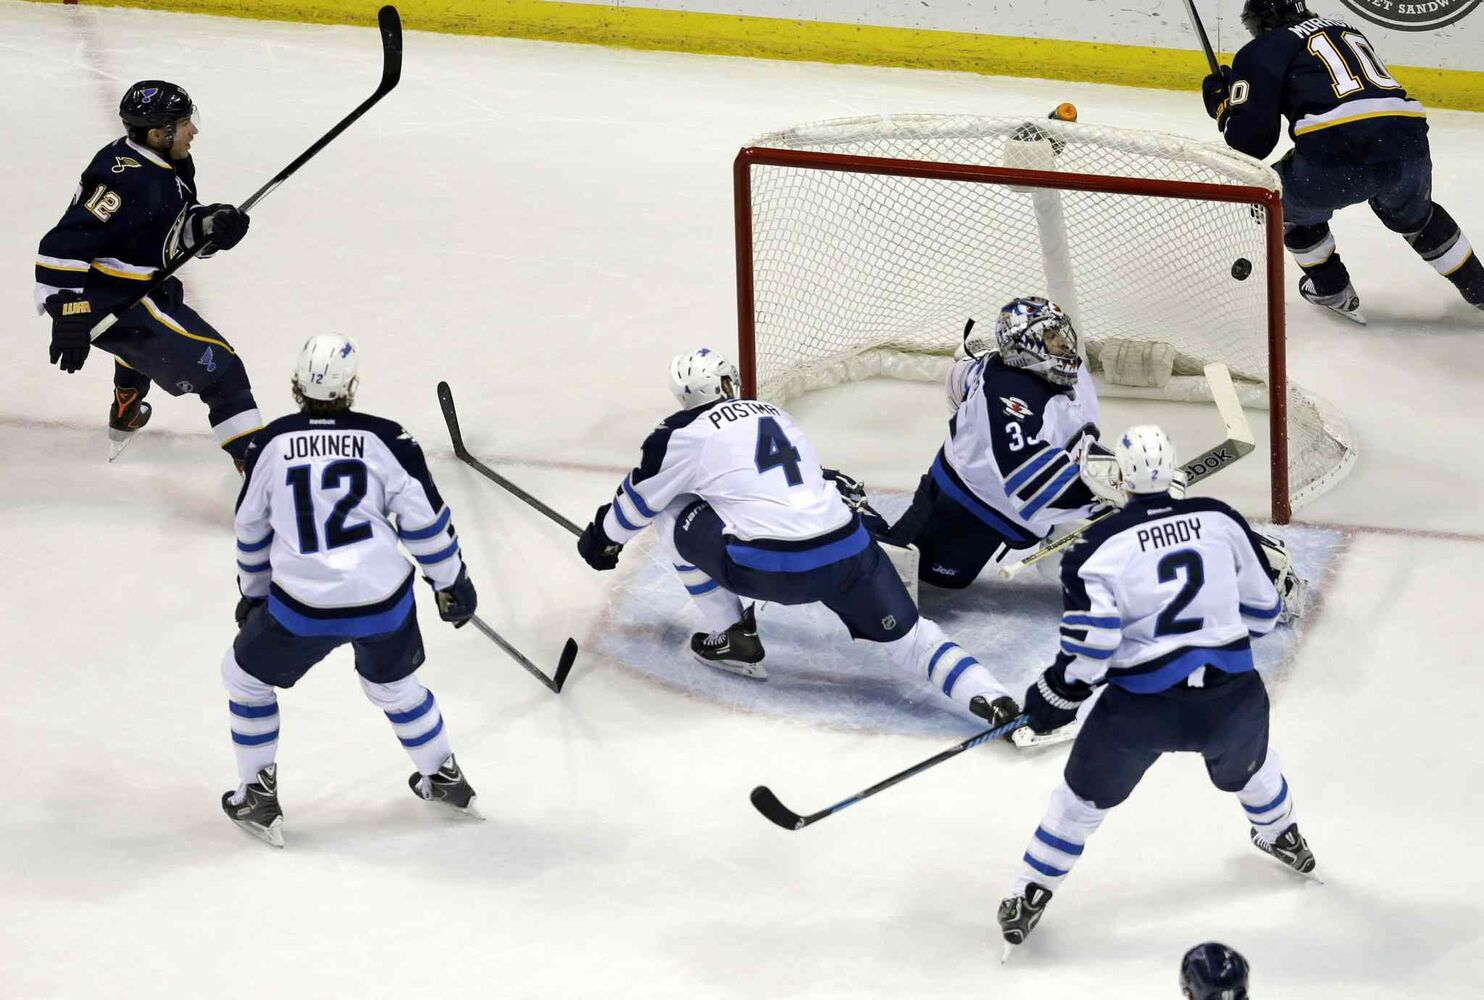 St. Louis Blues' Derek Roy, left, scores a first-period goal past Winnipeg Jets' goalie Al Montoya as Olli Jokinen (12), Paul Postma (4) and Adam Pardy (2) look on. (Jeff Roberson / The Associated Press)